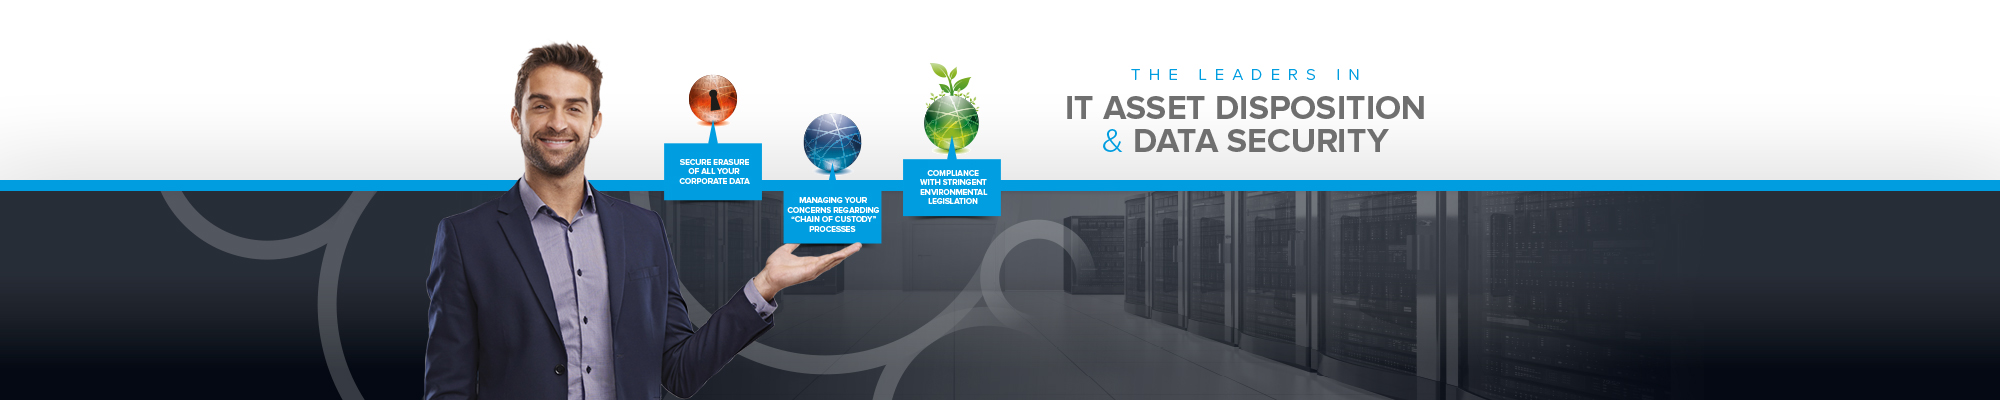 IT Project Management | IT Buy Back | Data Destruction | Asset Disposal